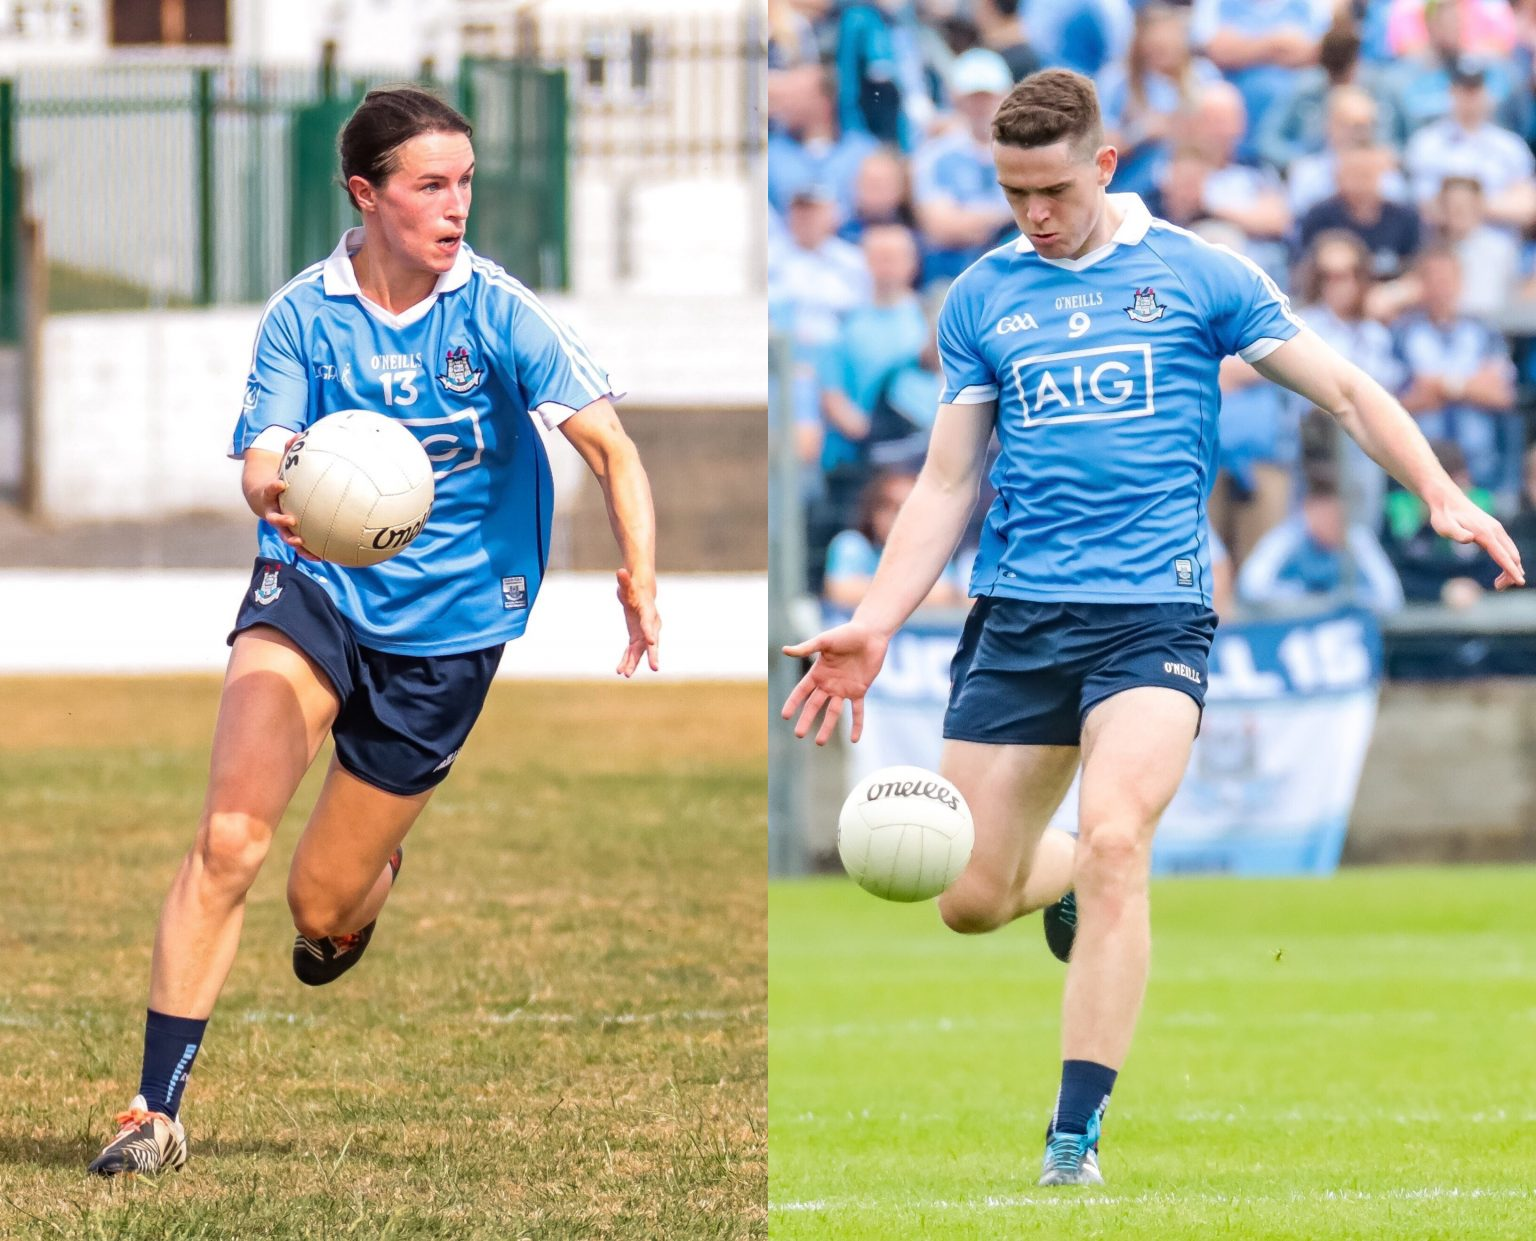 Dublin's Sinead Aherne and Brian Fenton in sky blue jerseys are both longlisted for the RTÉ Sport Sportsperson of the Year Award